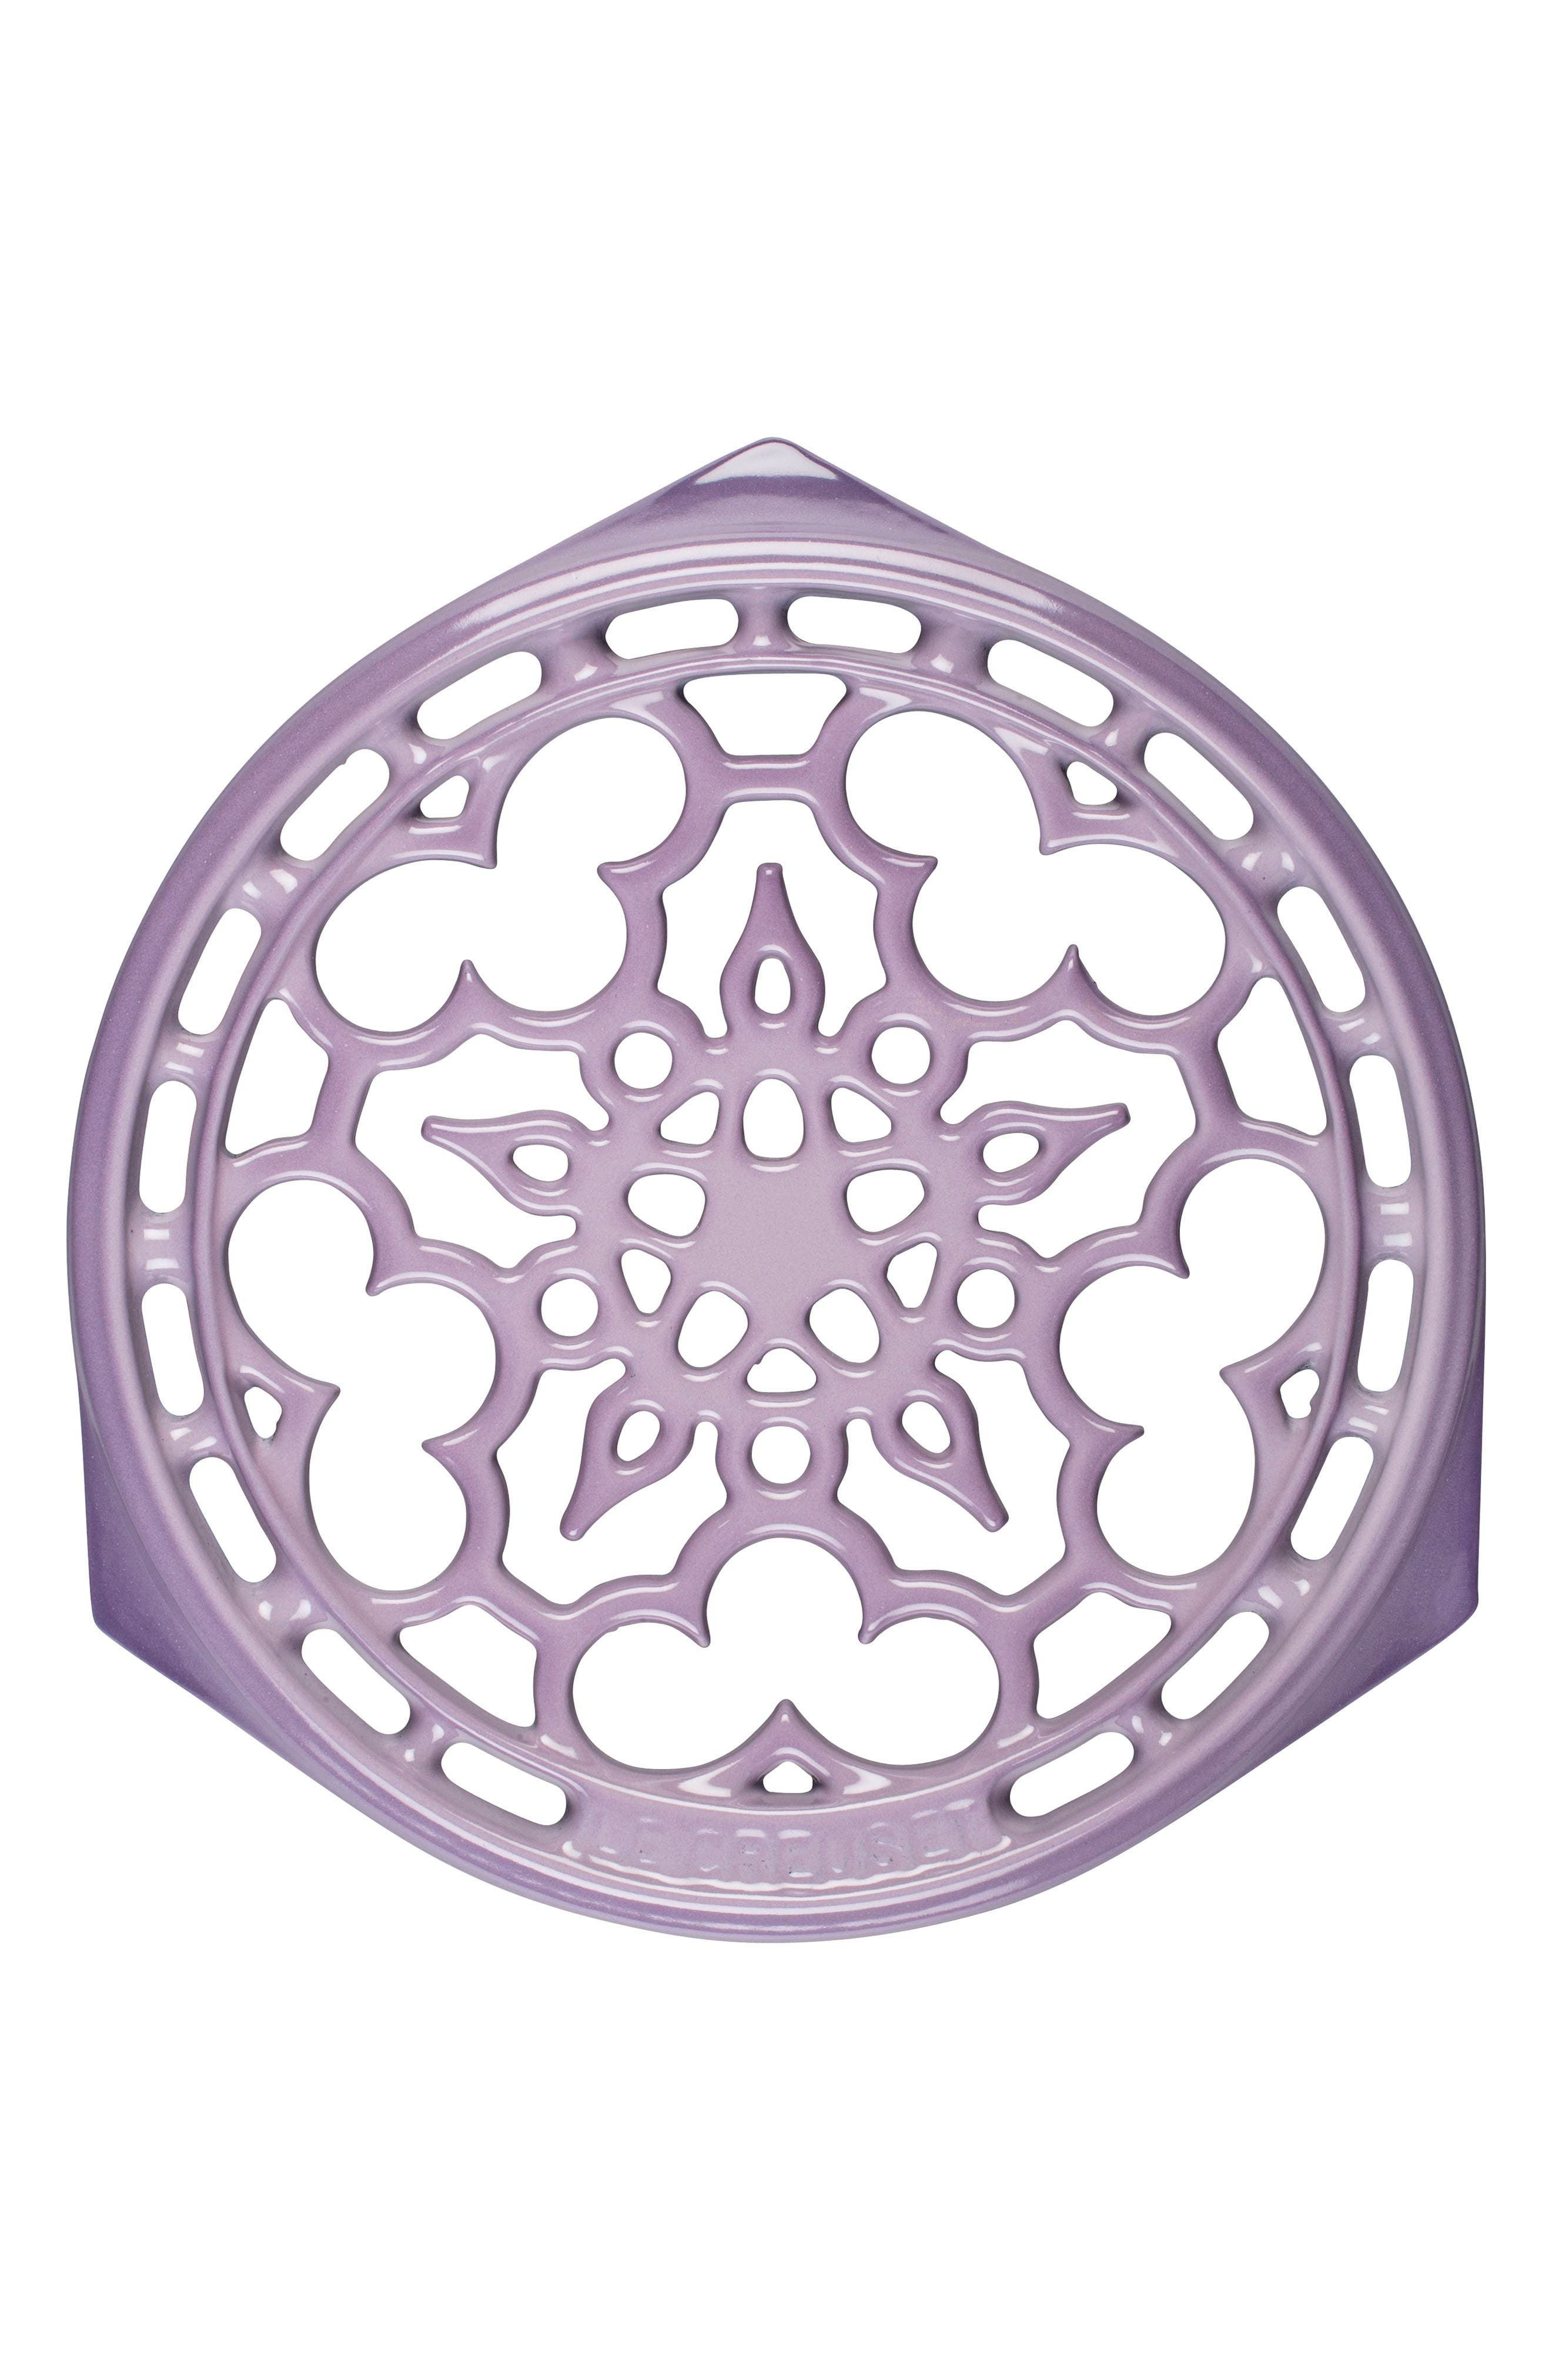 Deluxe Round Enamel Cast Iron Trivet,                             Main thumbnail 1, color,                             505